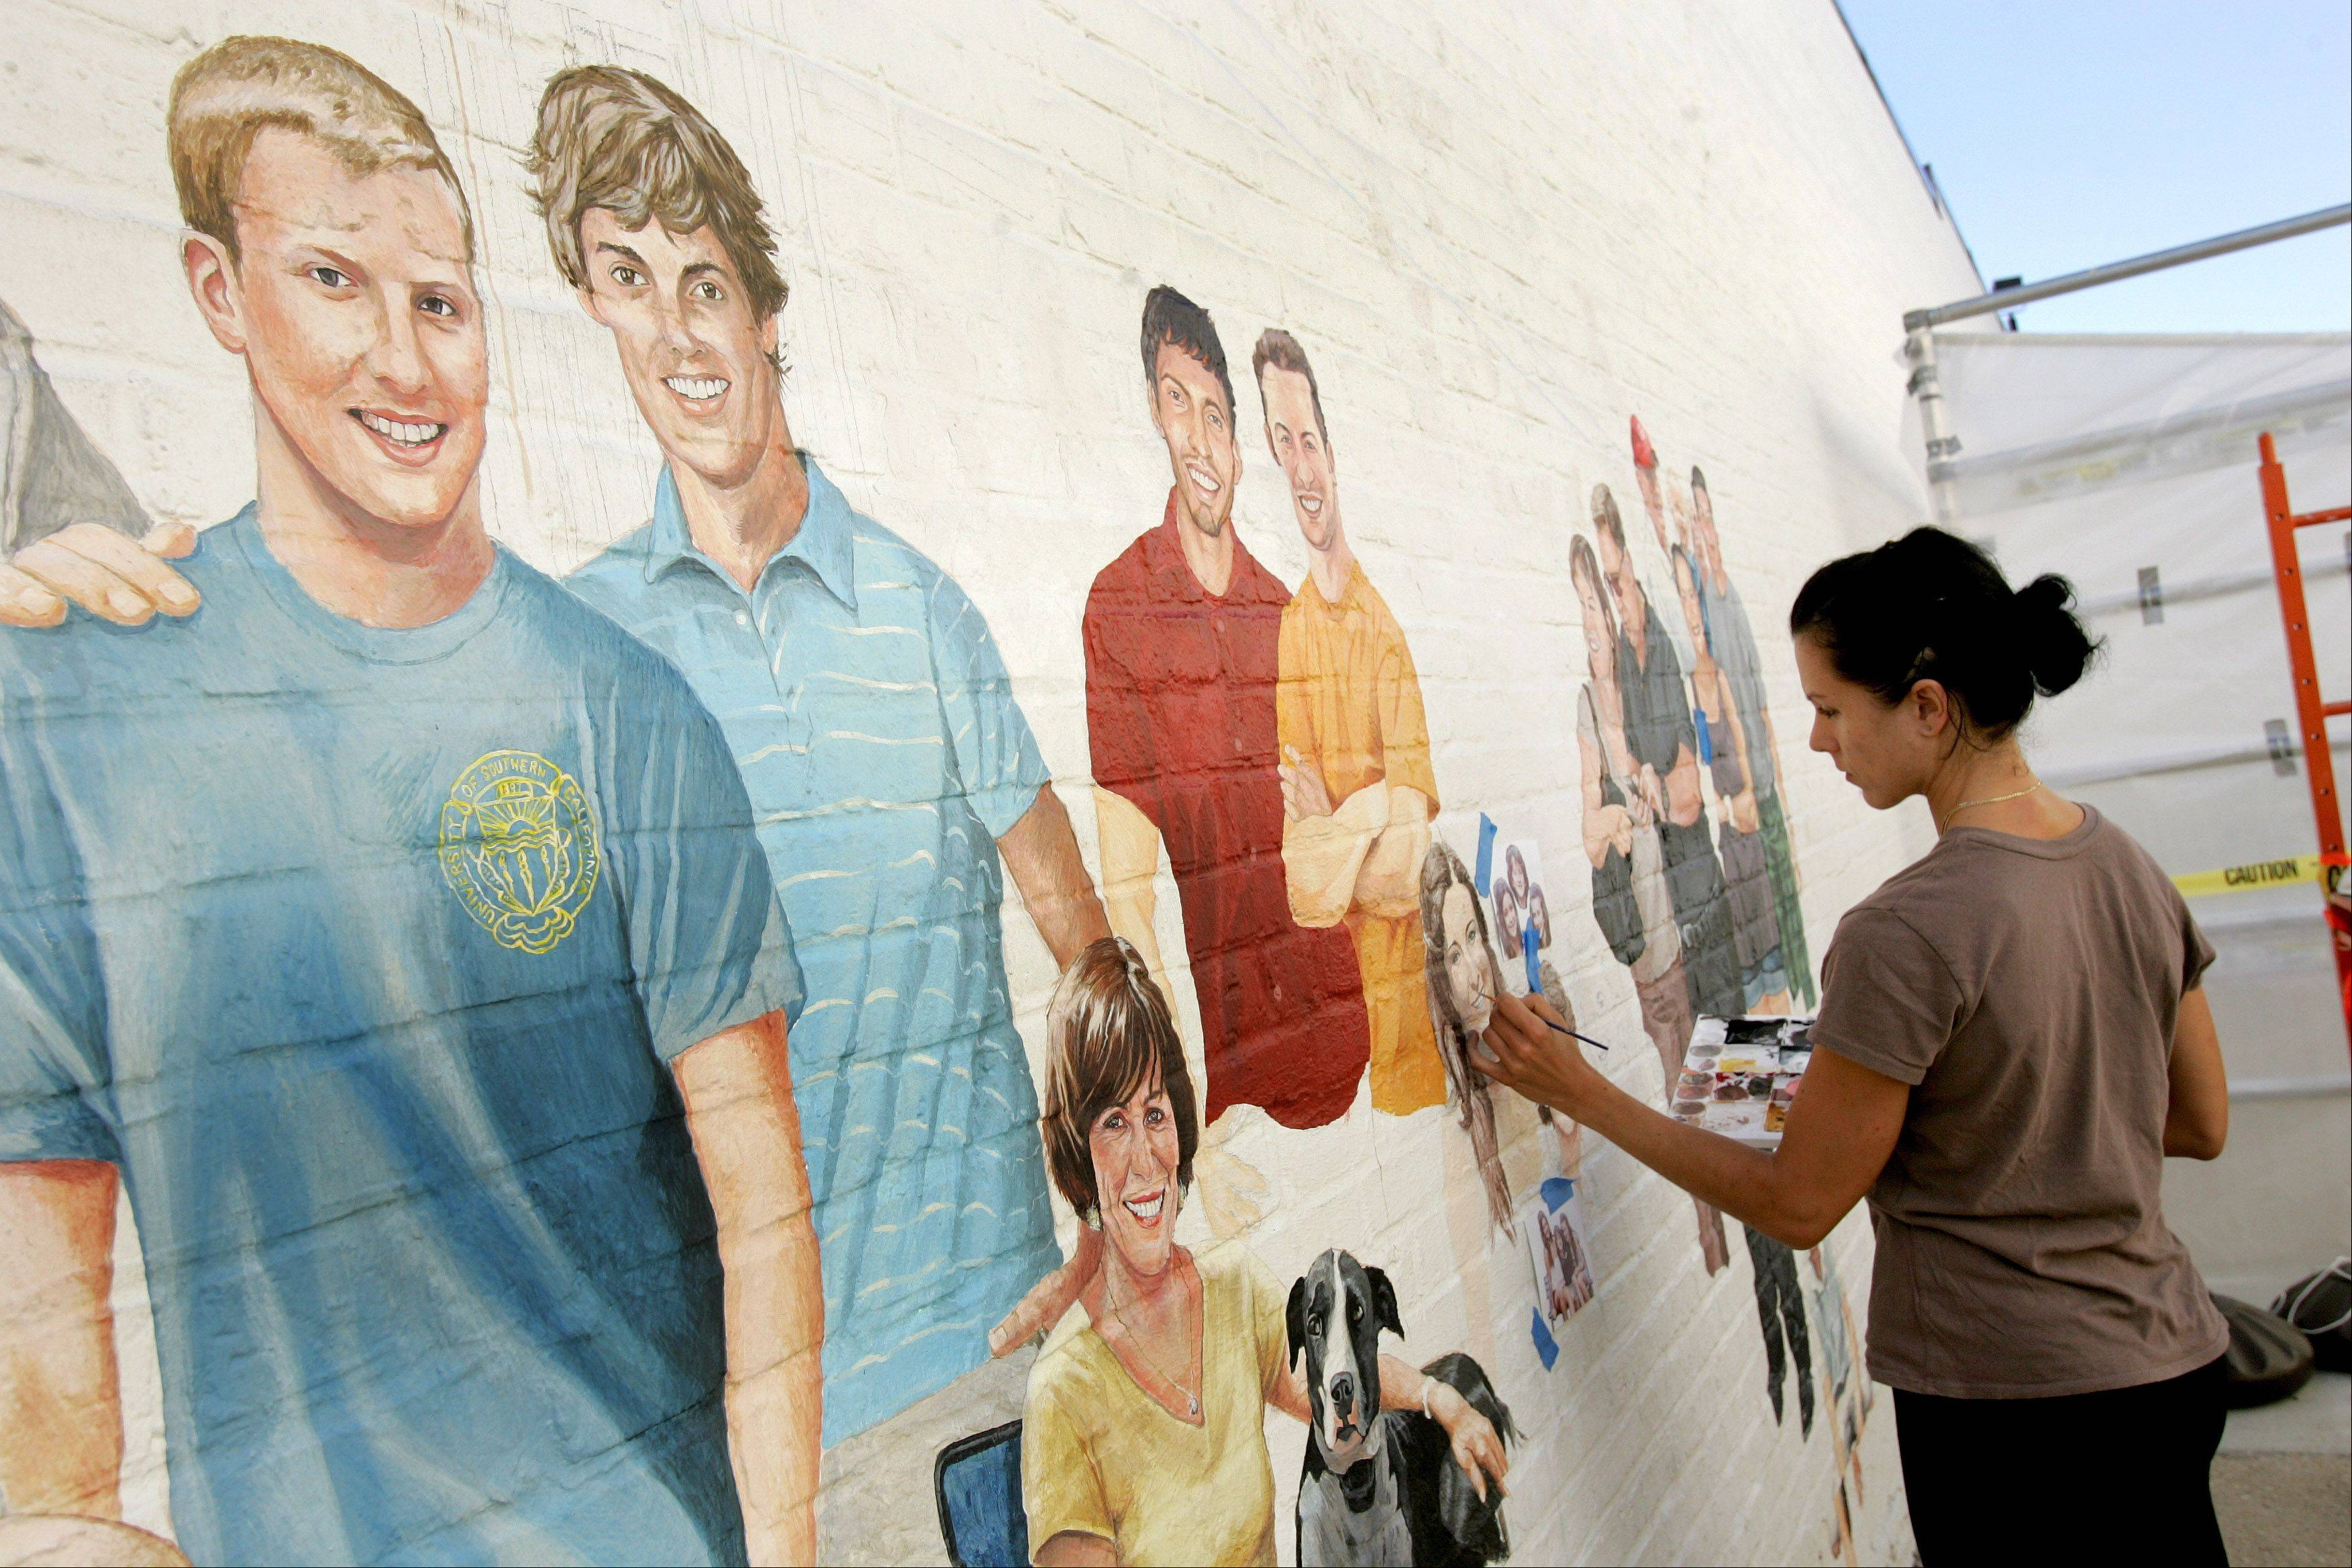 'Naperville Loves a Parade' mural shaping up